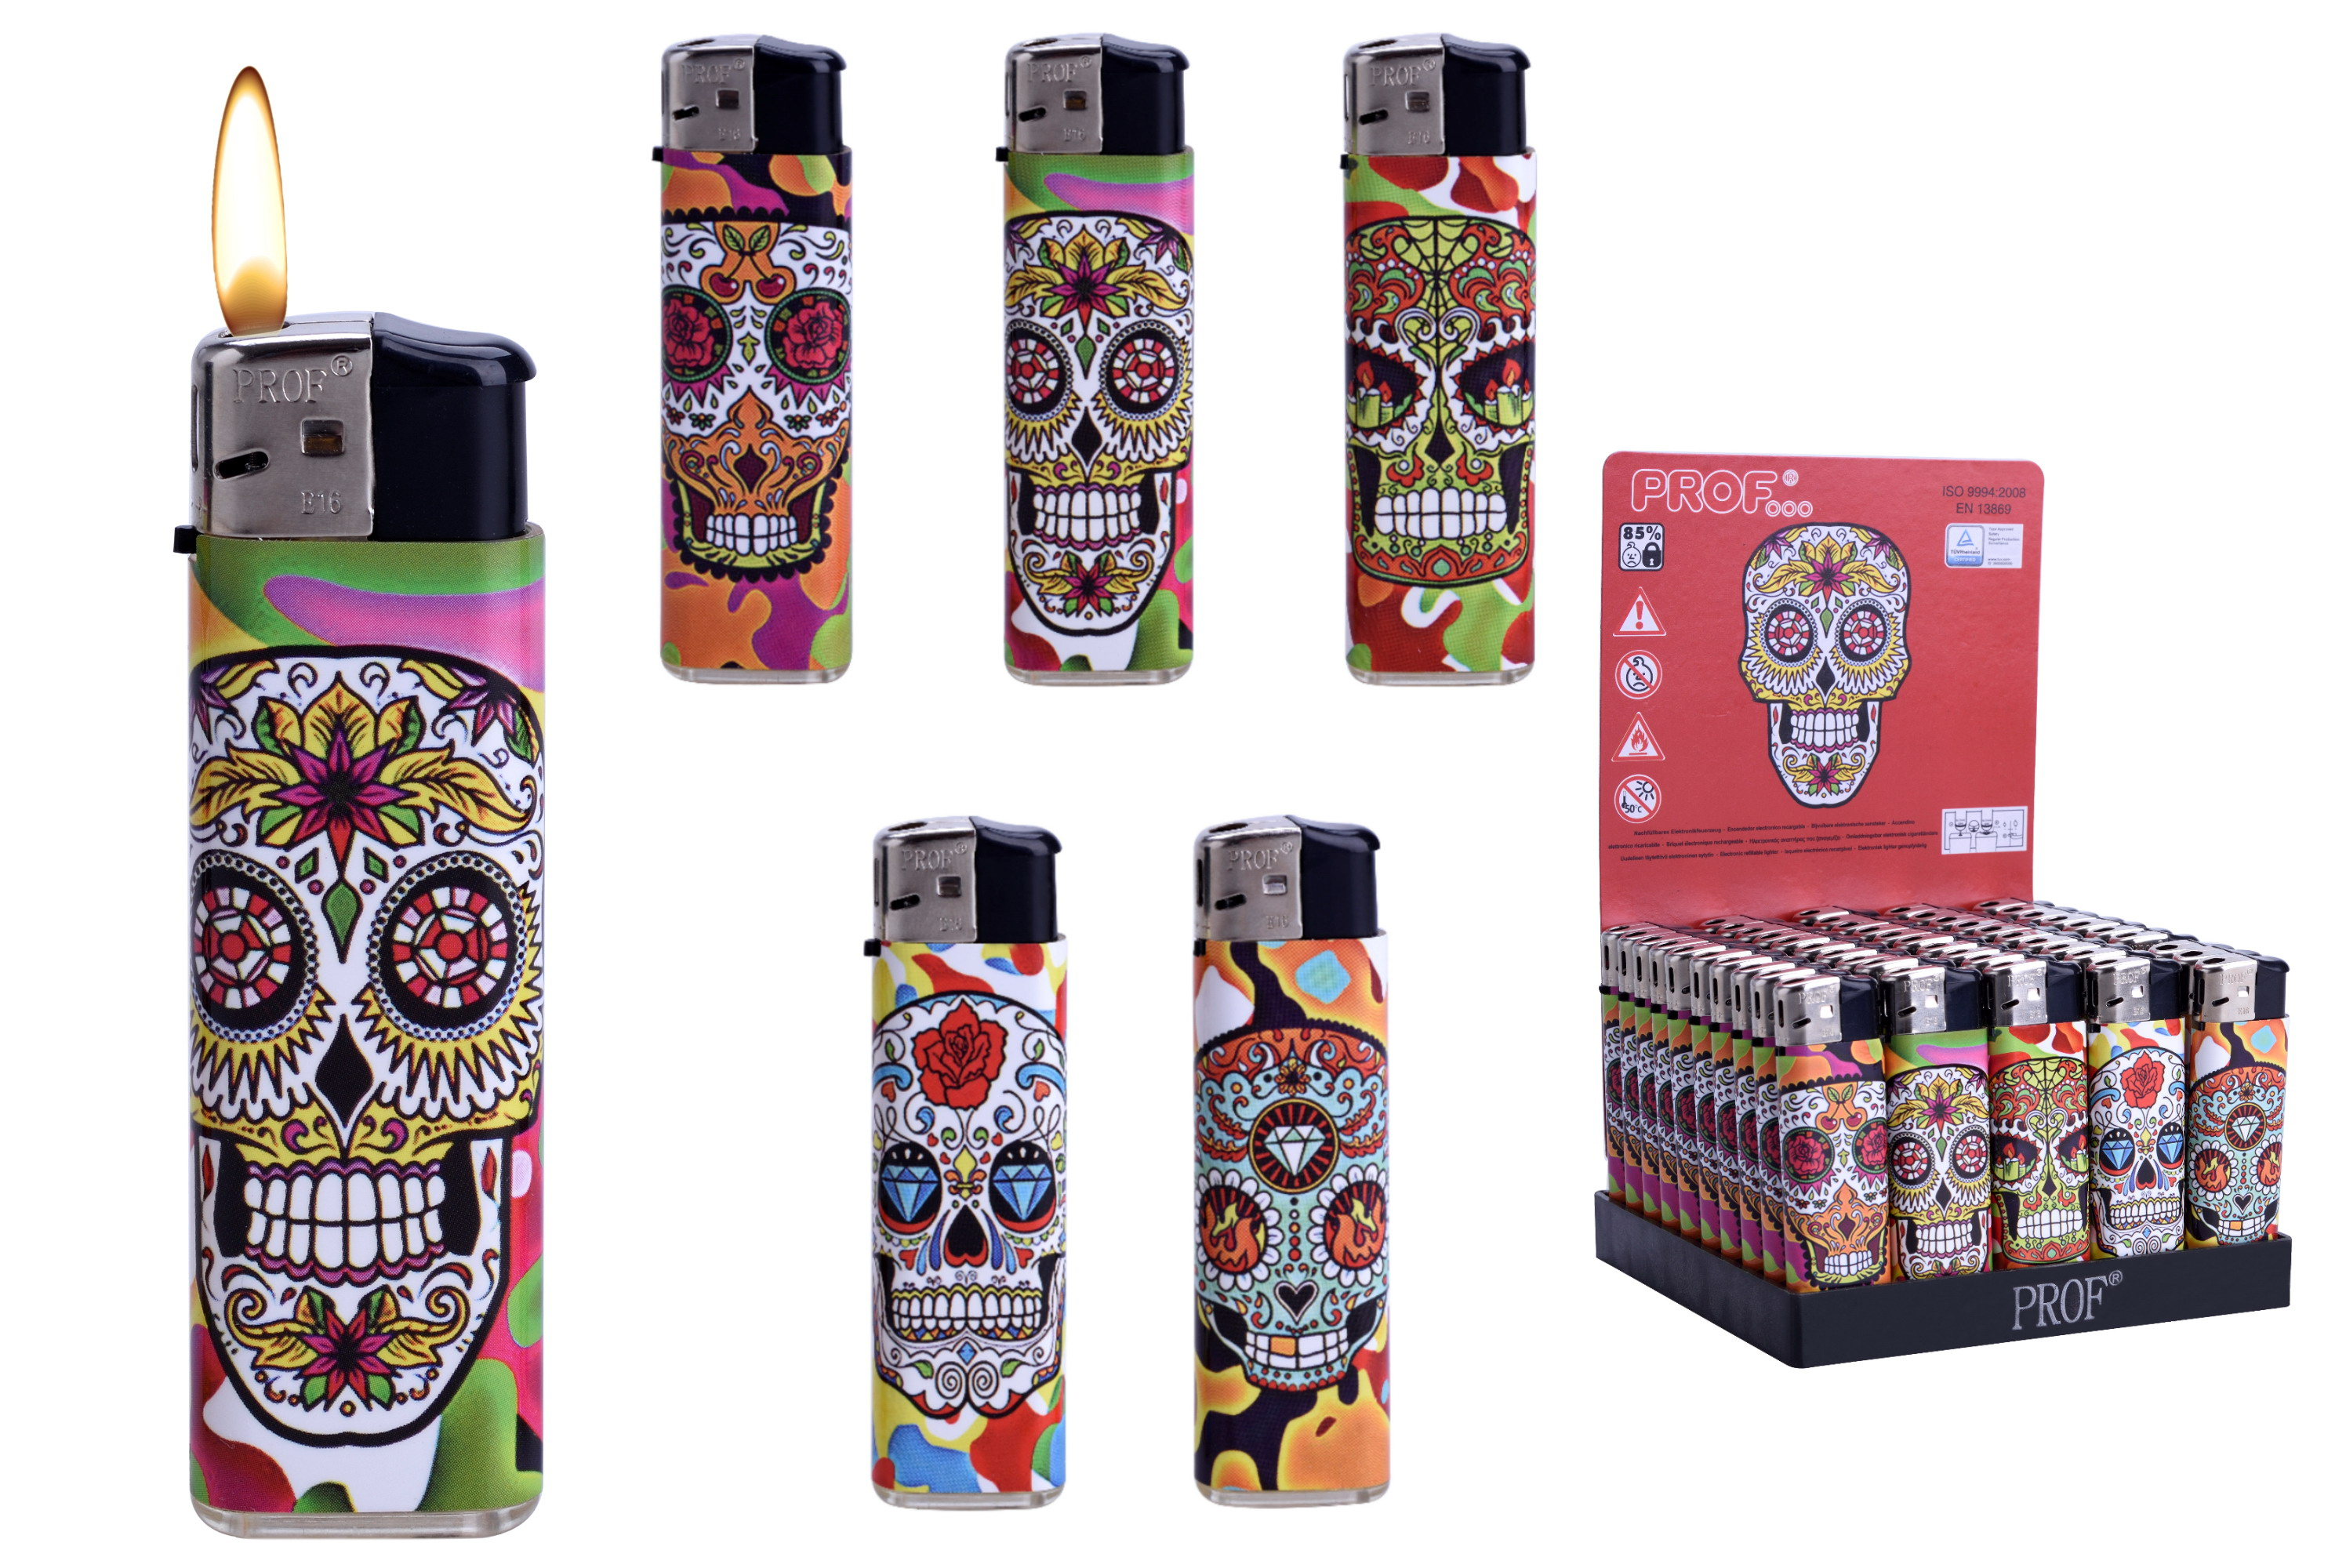 Skull Design Disposable Lighter In Display Box